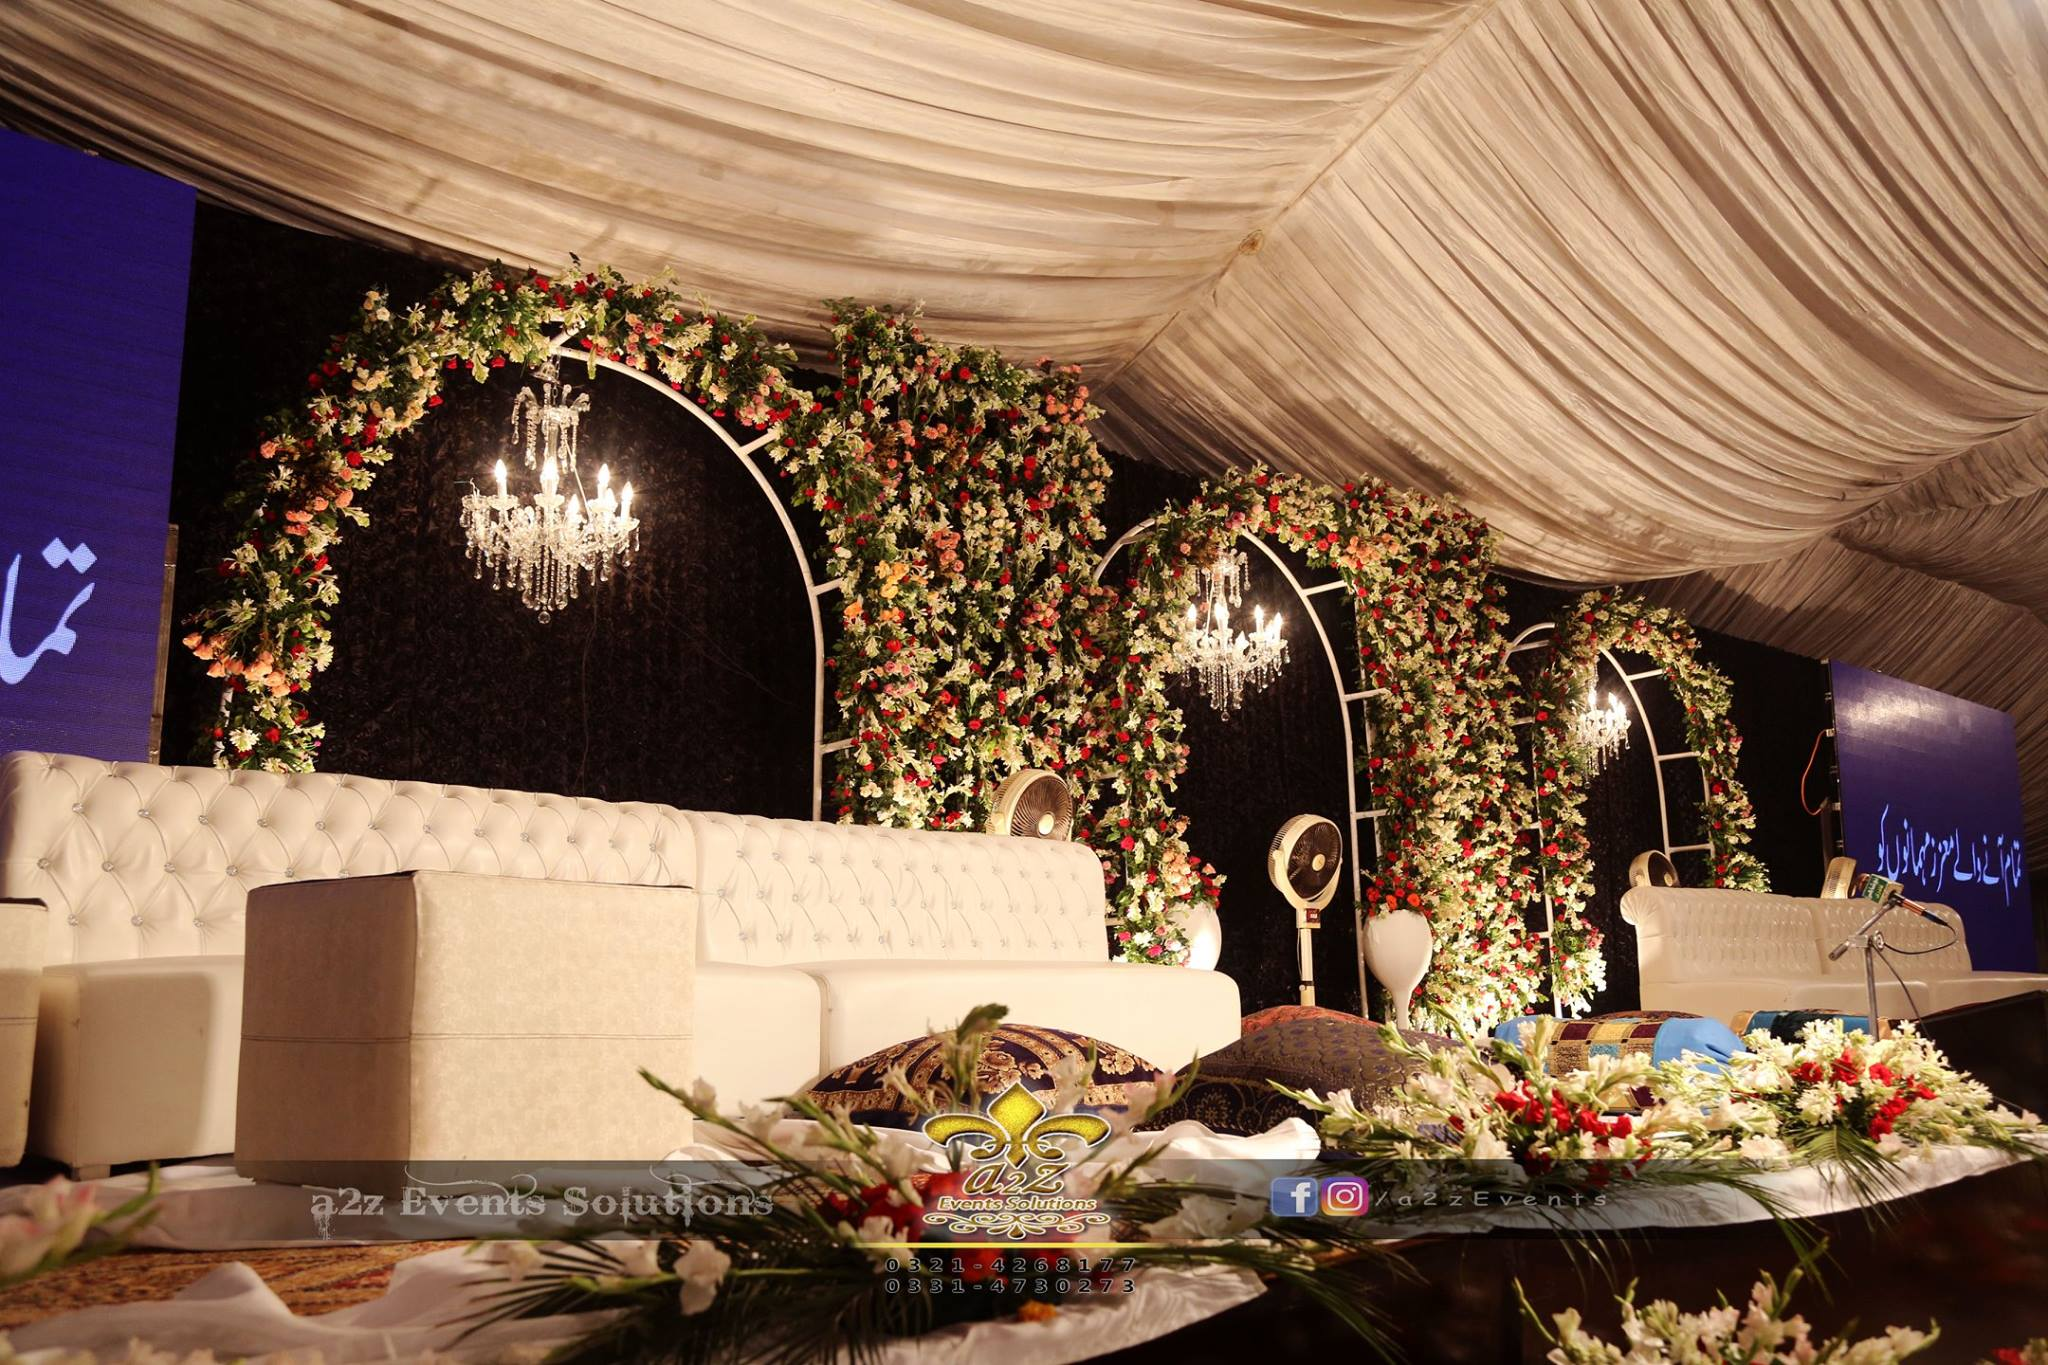 grand stage, mehfil-e-naat stage